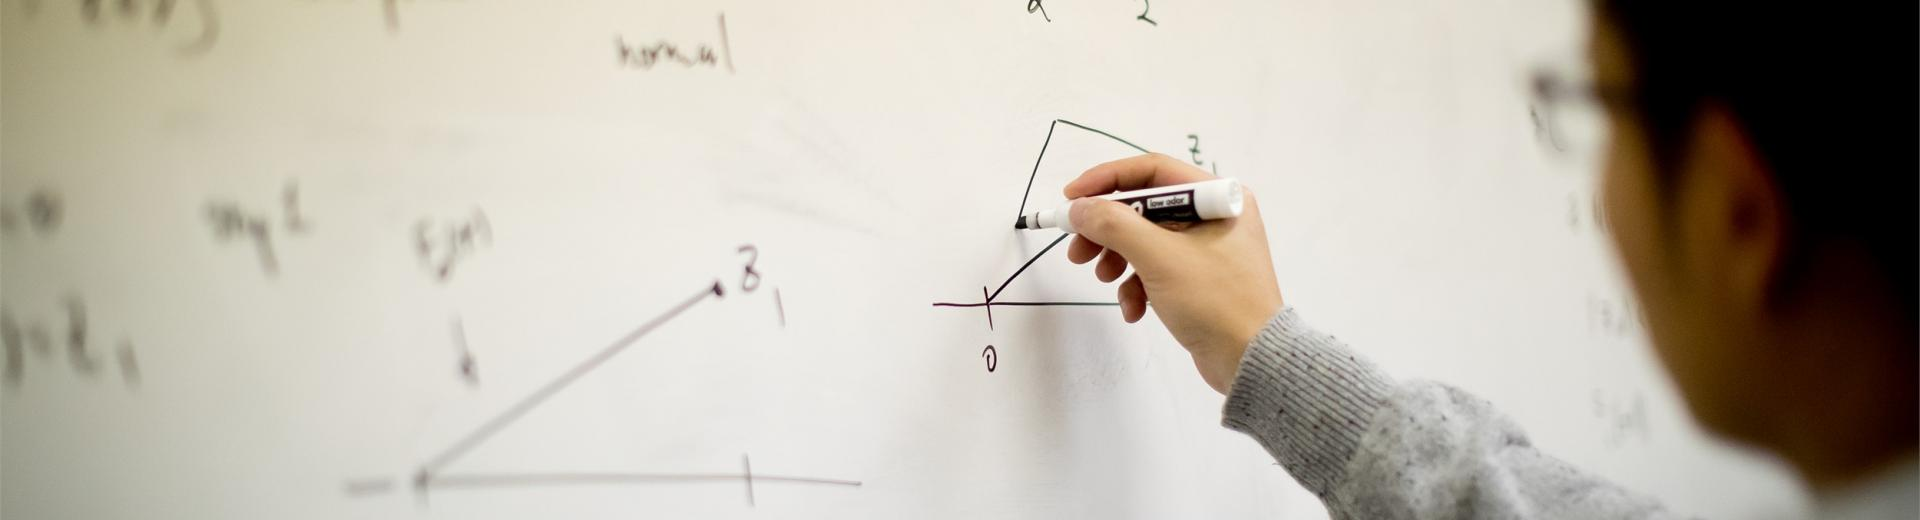 Temple student working out a math equation on a white board.